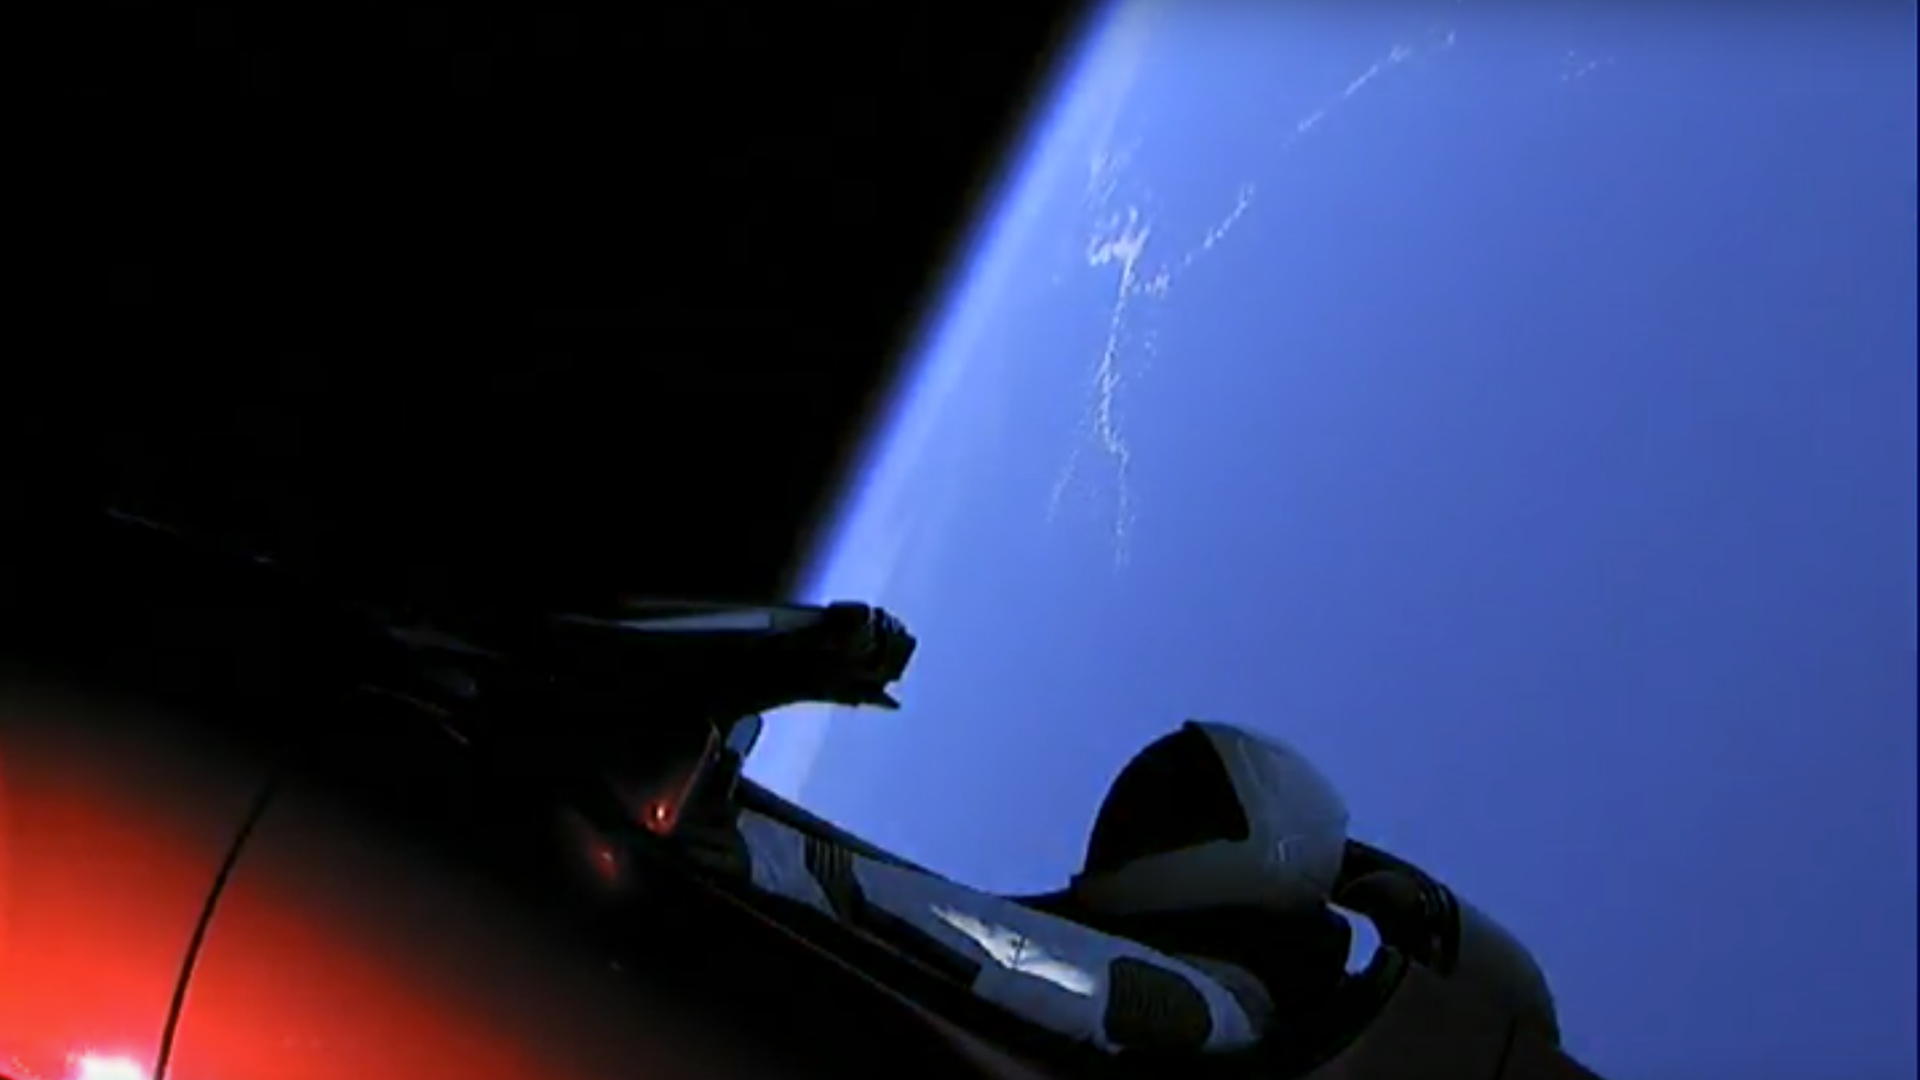 Elon Musk's roadster, with a spacesuit passenger, will remain in orbit around the sun for the foreseeable future.